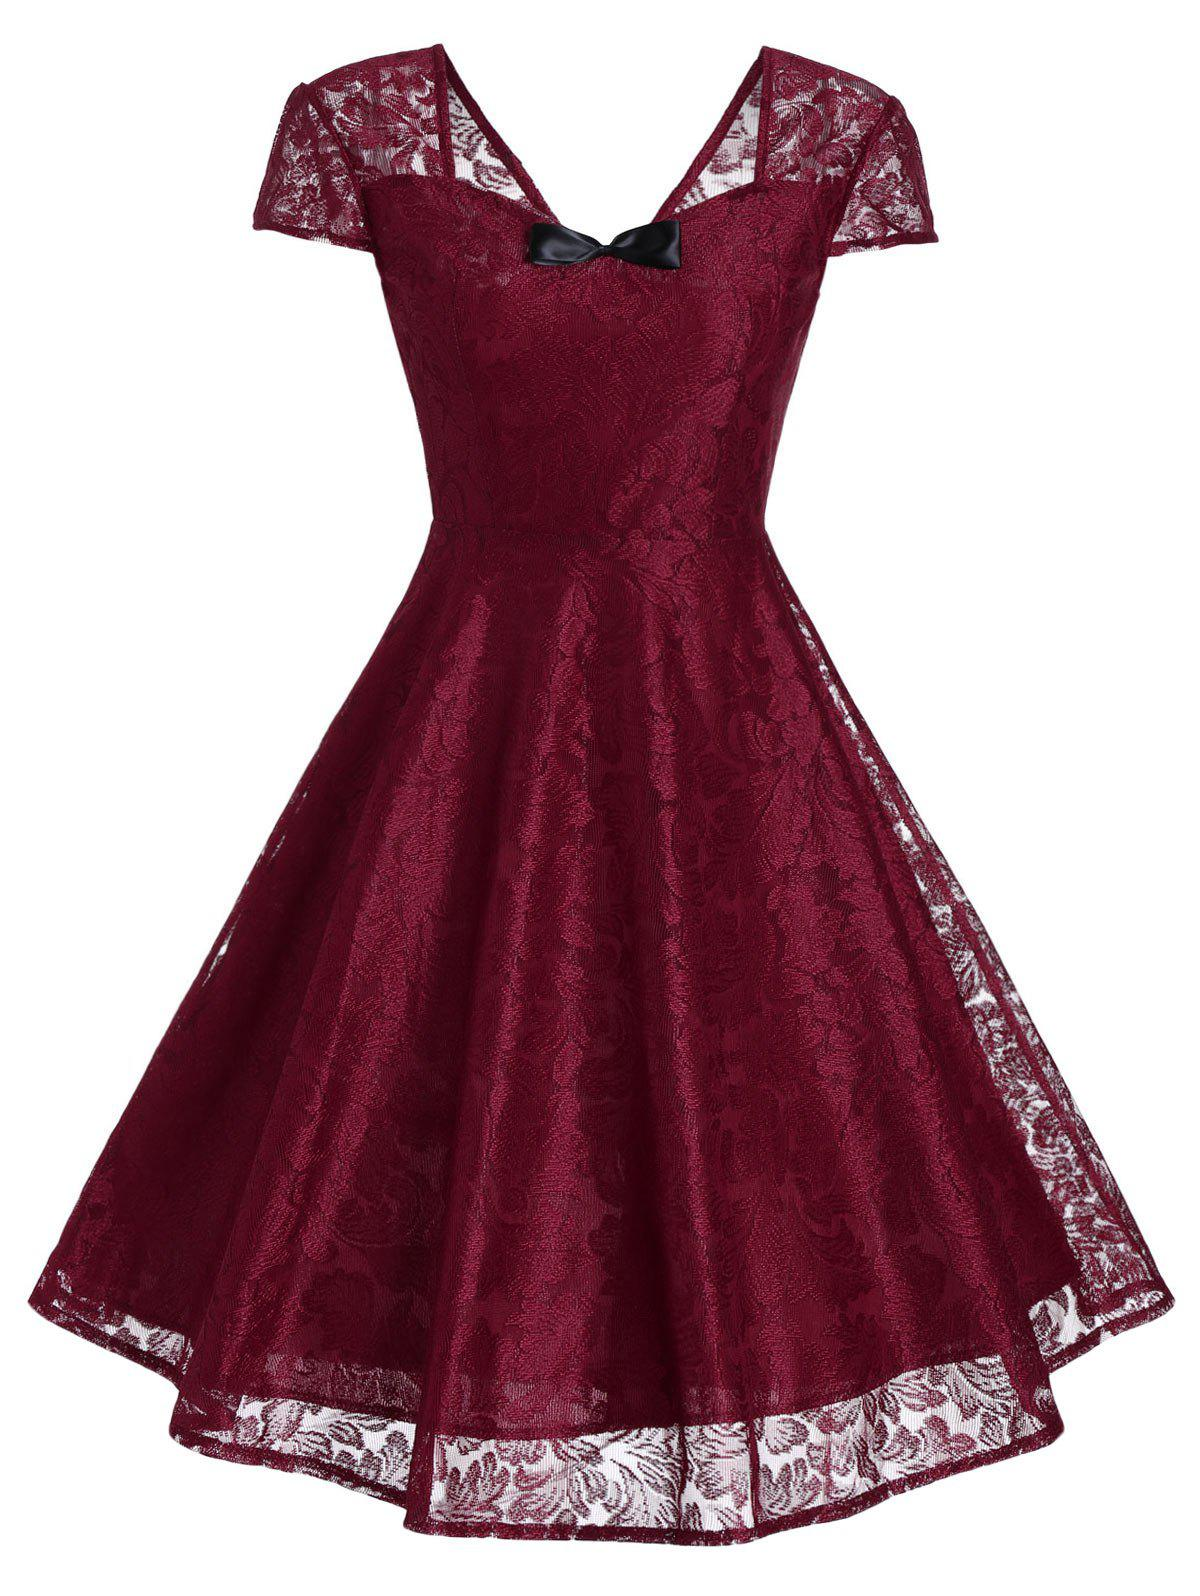 Vintage Bowknot Lace Fit and Flare Dress lace overlay fit and flare dress